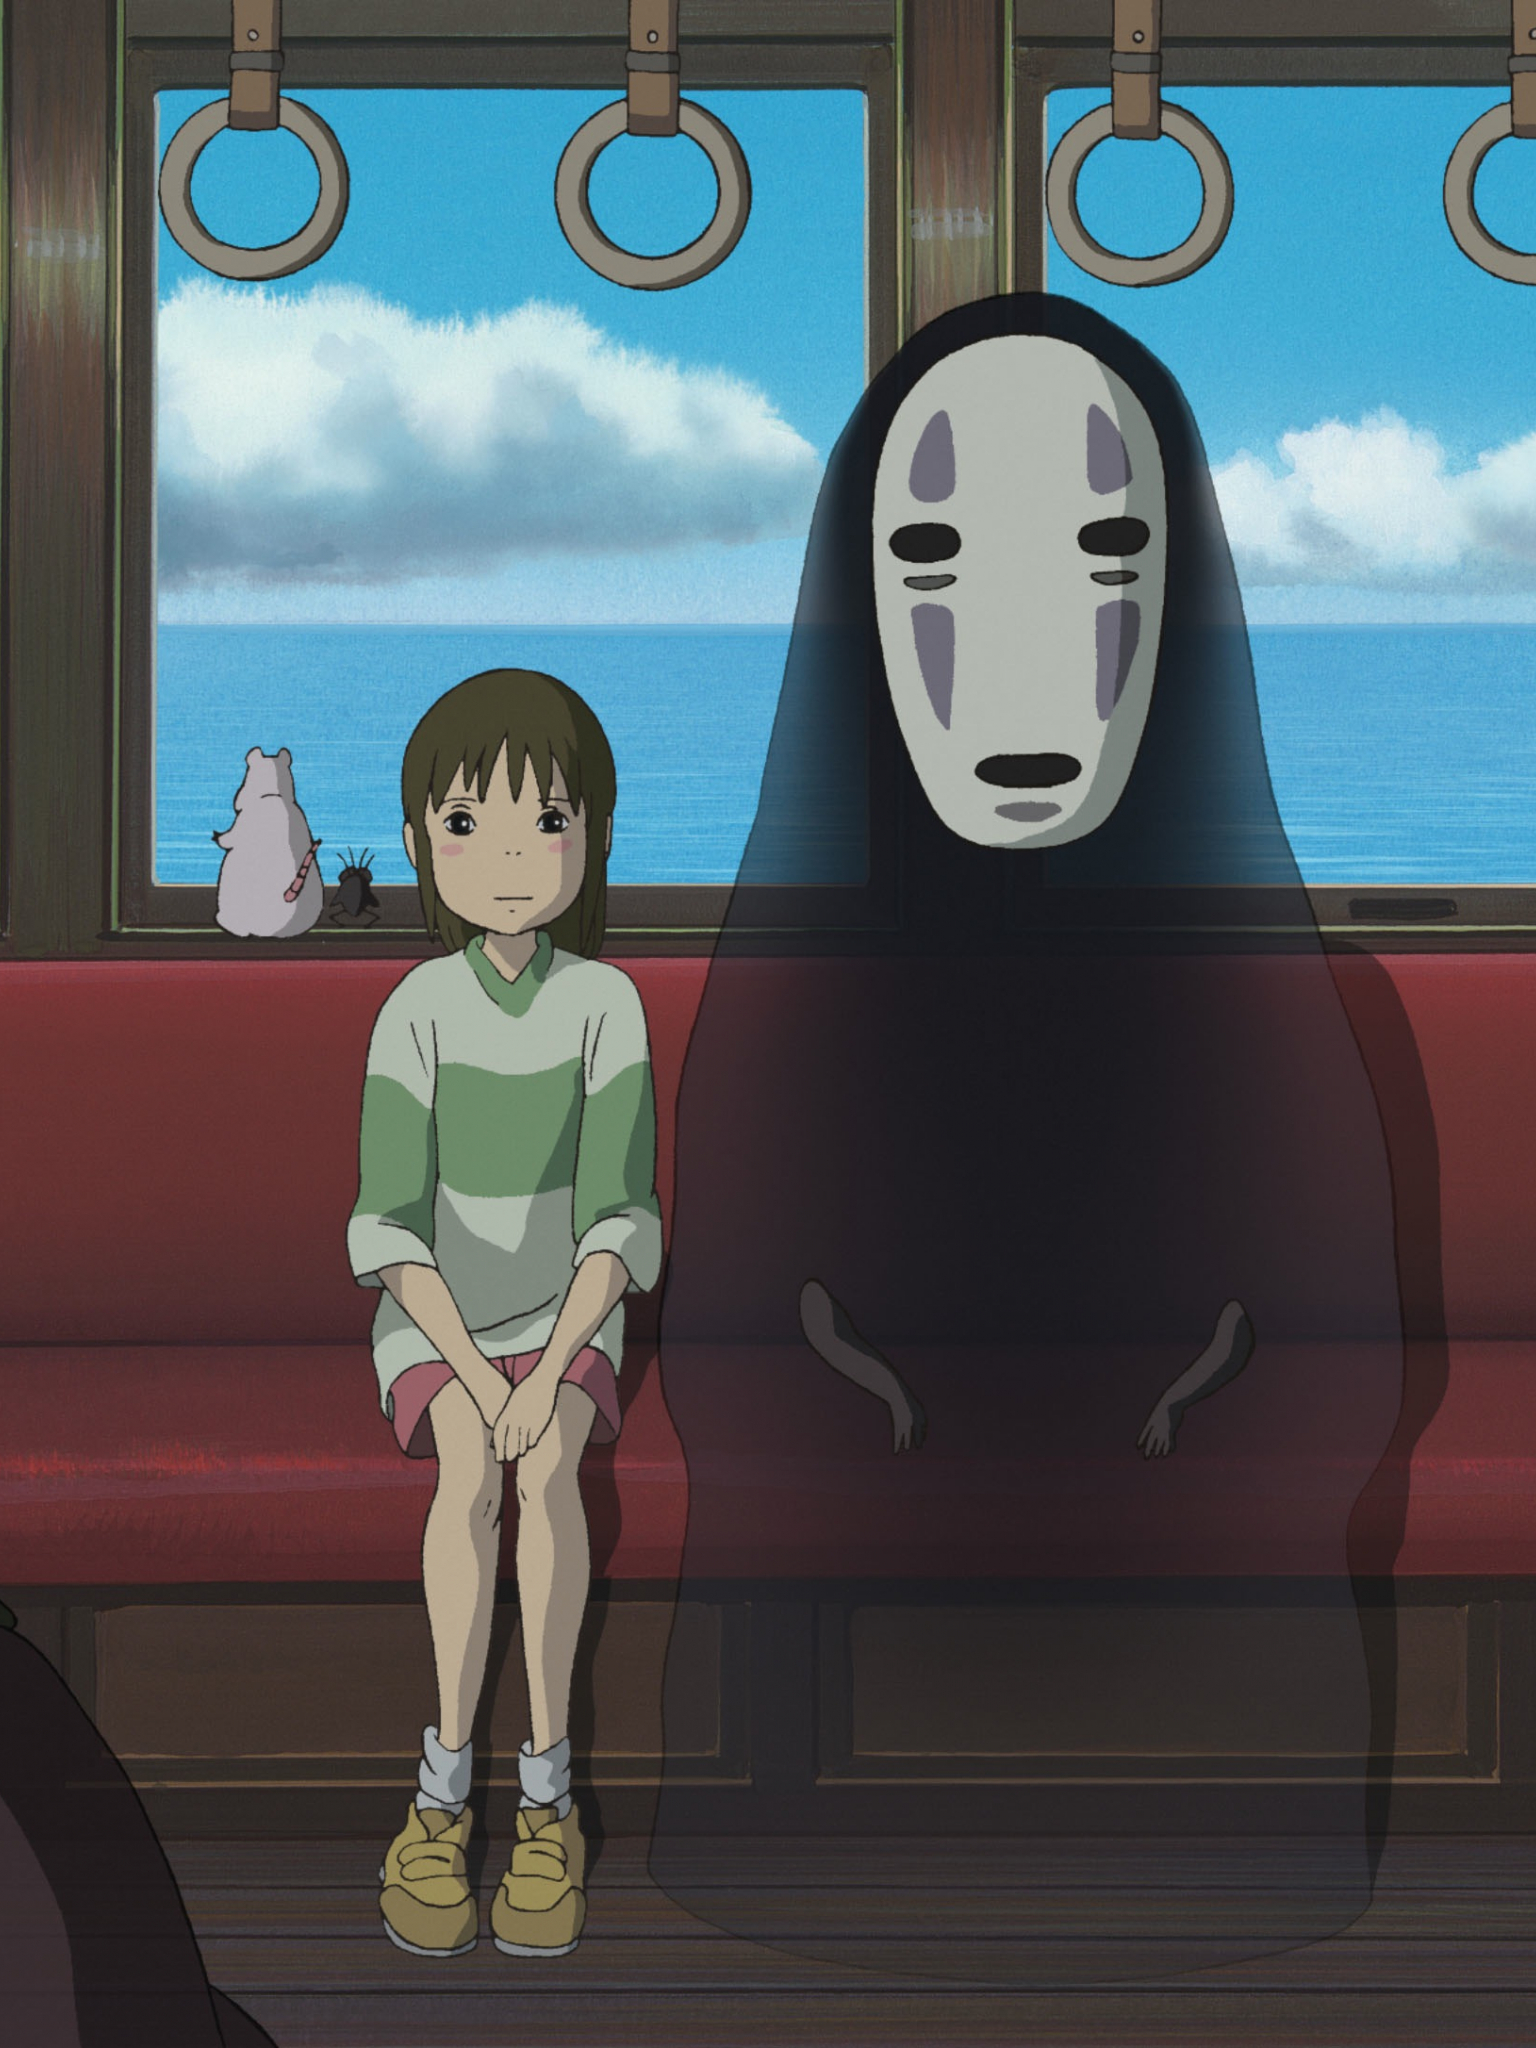 Free Download No Face Spirited Away Wallpaper Images Pictures